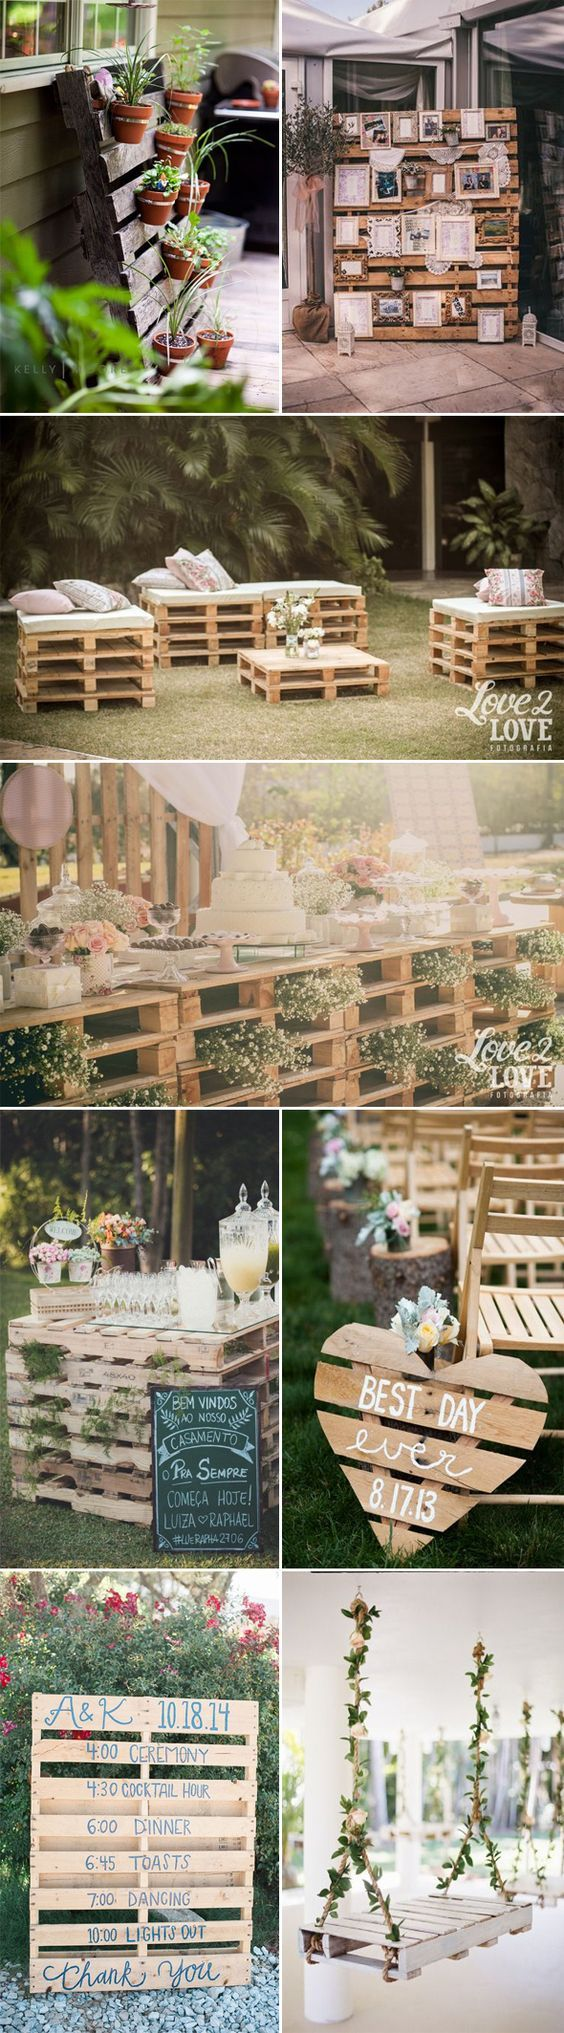 wedding ideas using pallets best 25 pallet wedding ideas on wooden 28338